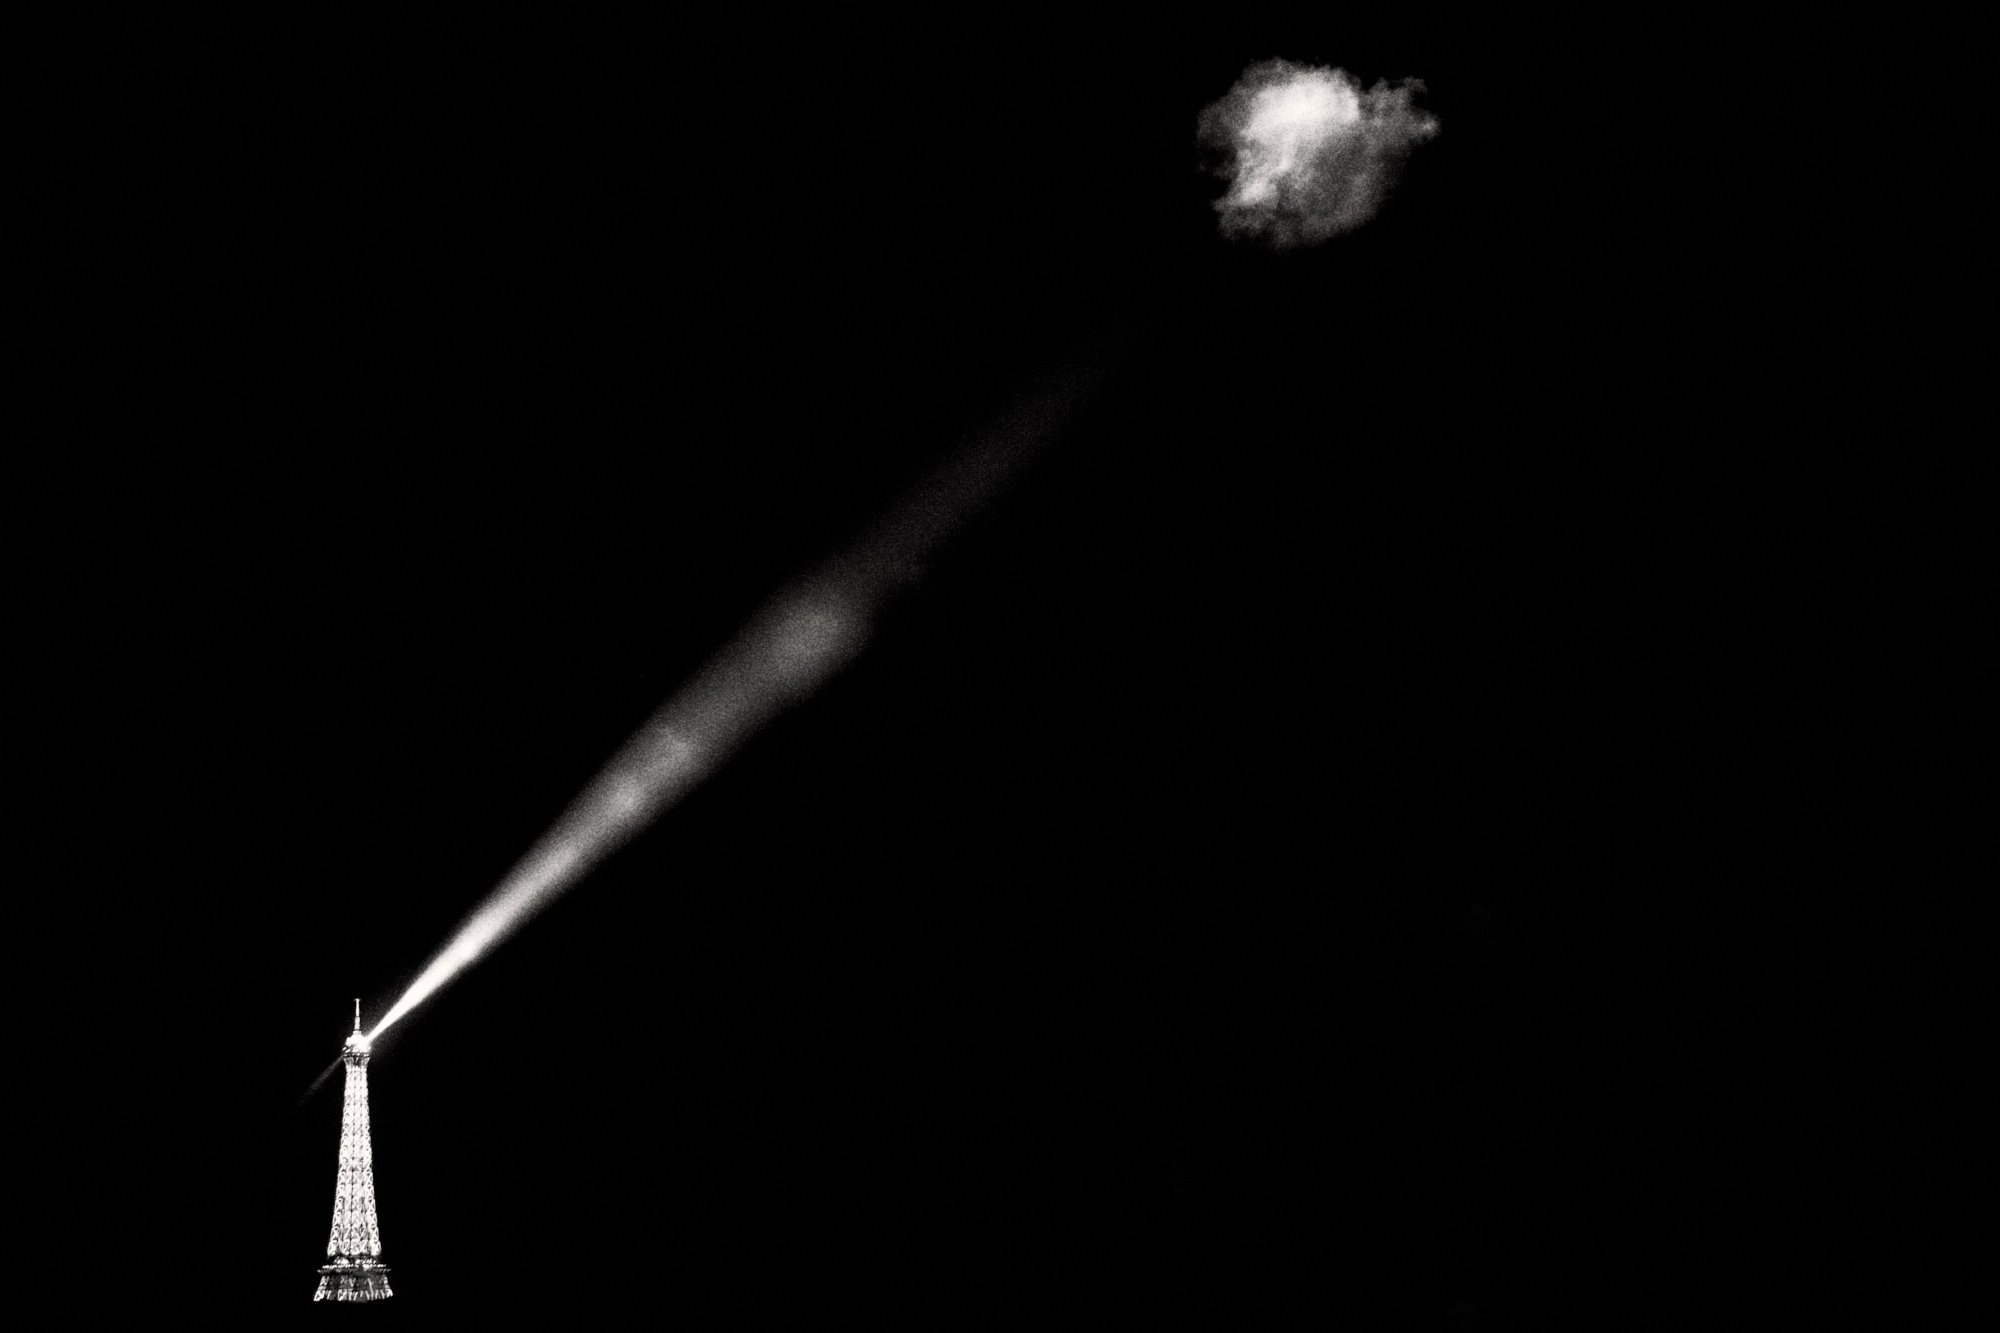 Eiffel_Tower_BW